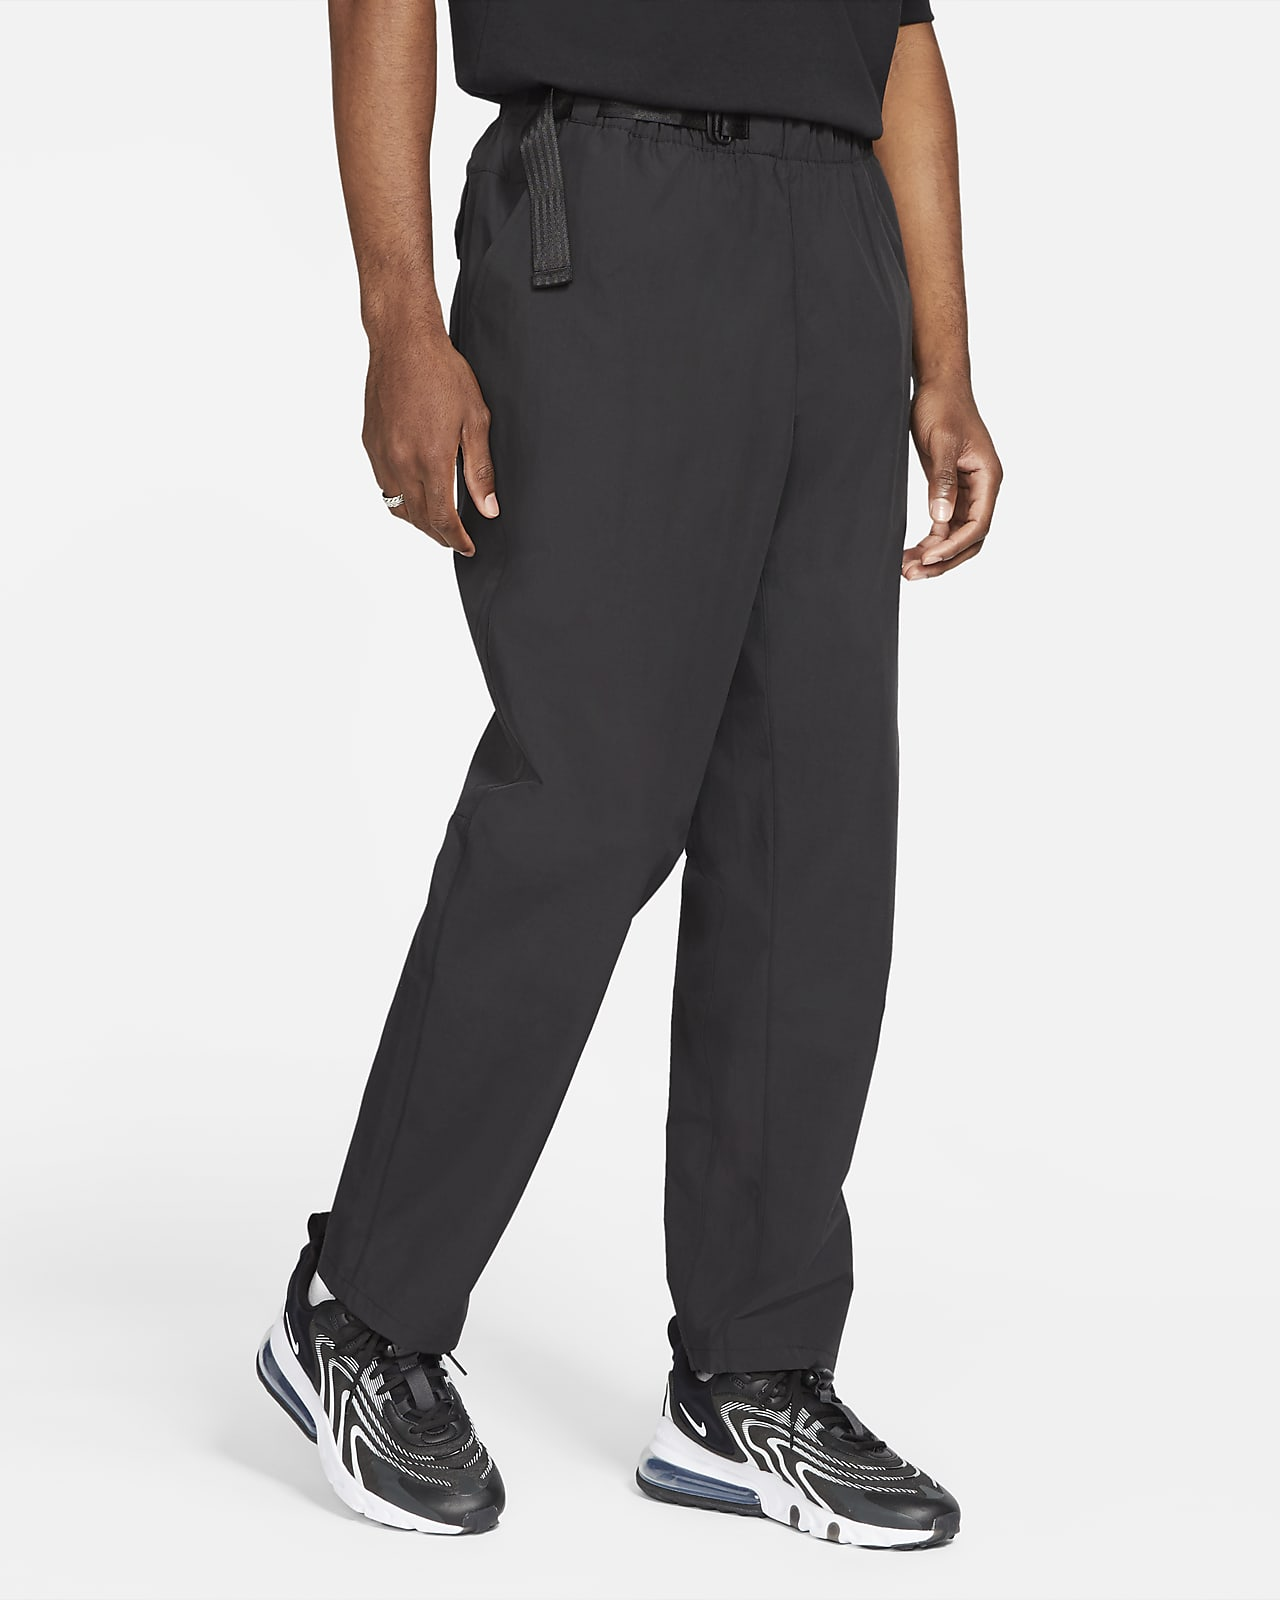 Nike Sportswear Premium Essentials Men's Woven Trousers